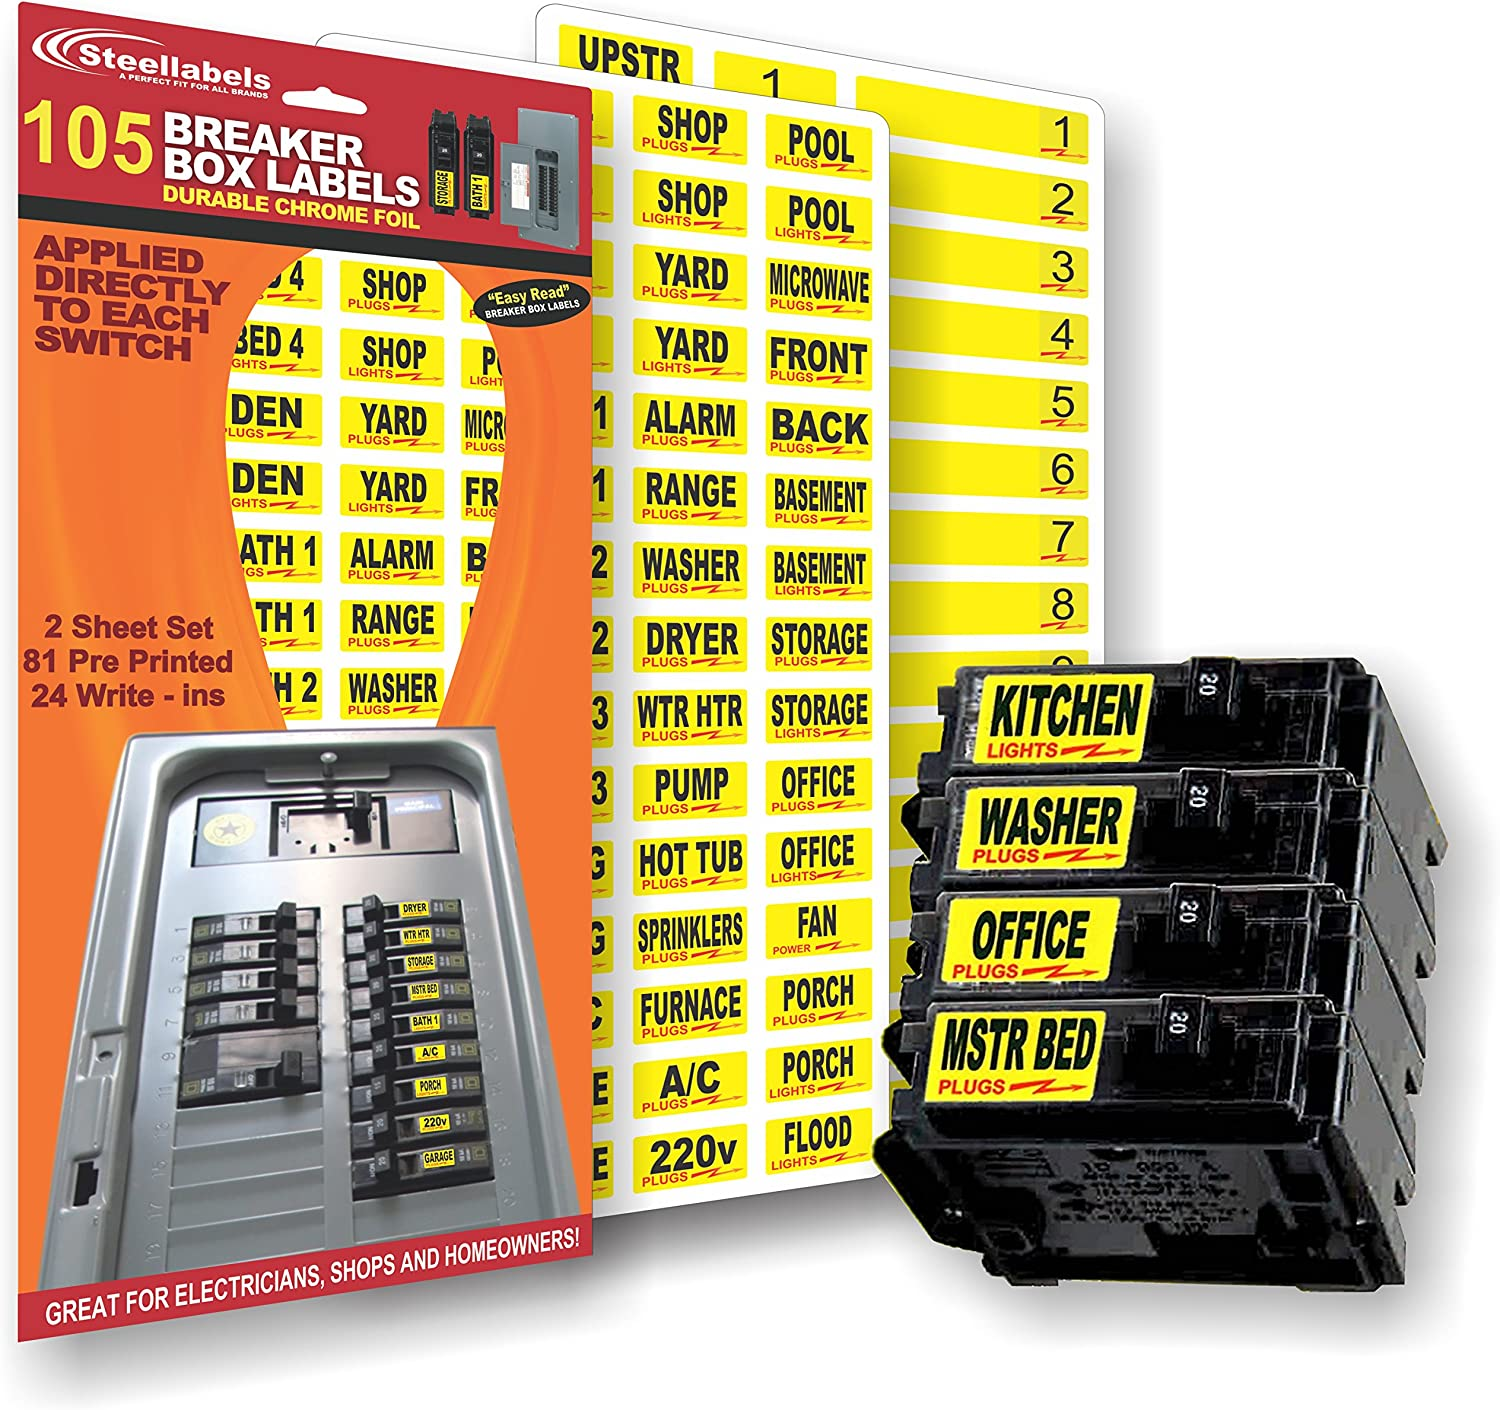 Amazon.com: Circuit Breaker Decals - 105 Tough vinyl labels for Breaker  Panel Boxes - Great for Home or Office - Apartment Complexes and  Electricians - Placed directly on Switch or Fuse -Amazon.com